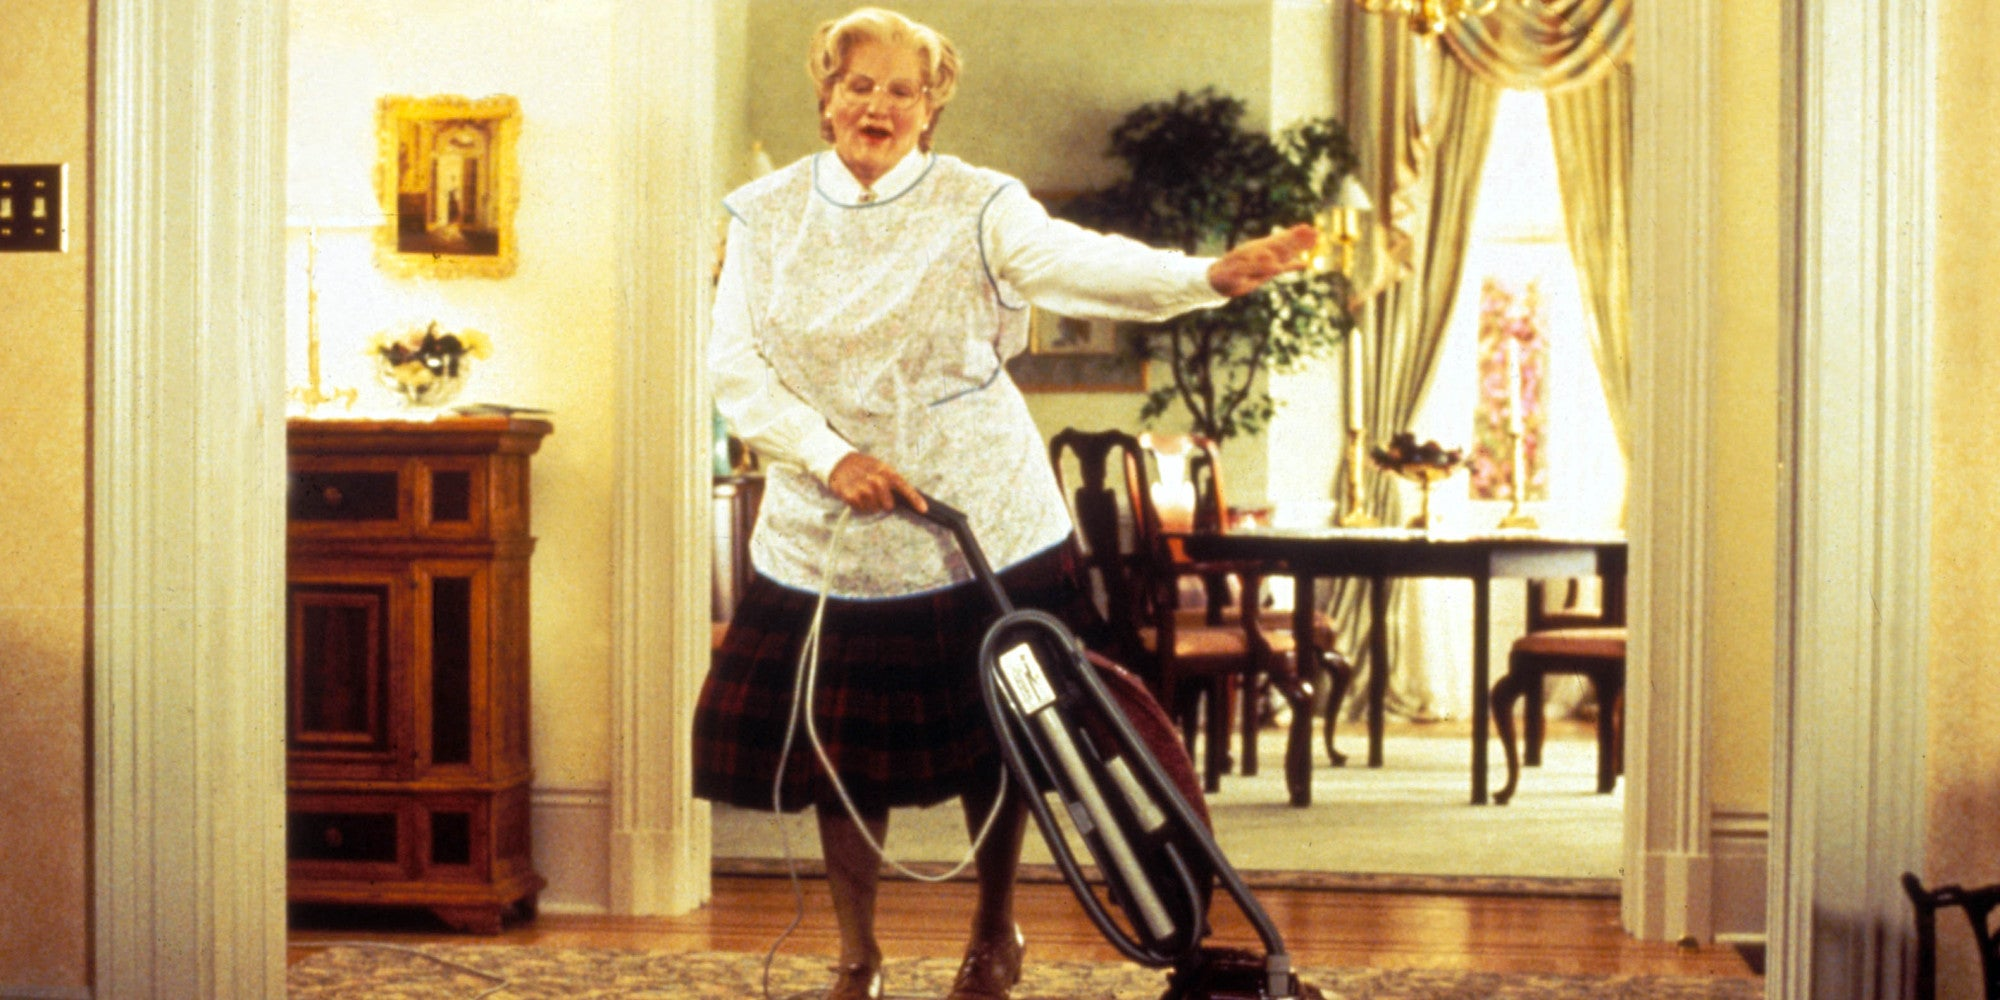 pics This Deleted Mrs. Doubtfire Scene Makes the Movie Even More Heartbreaking